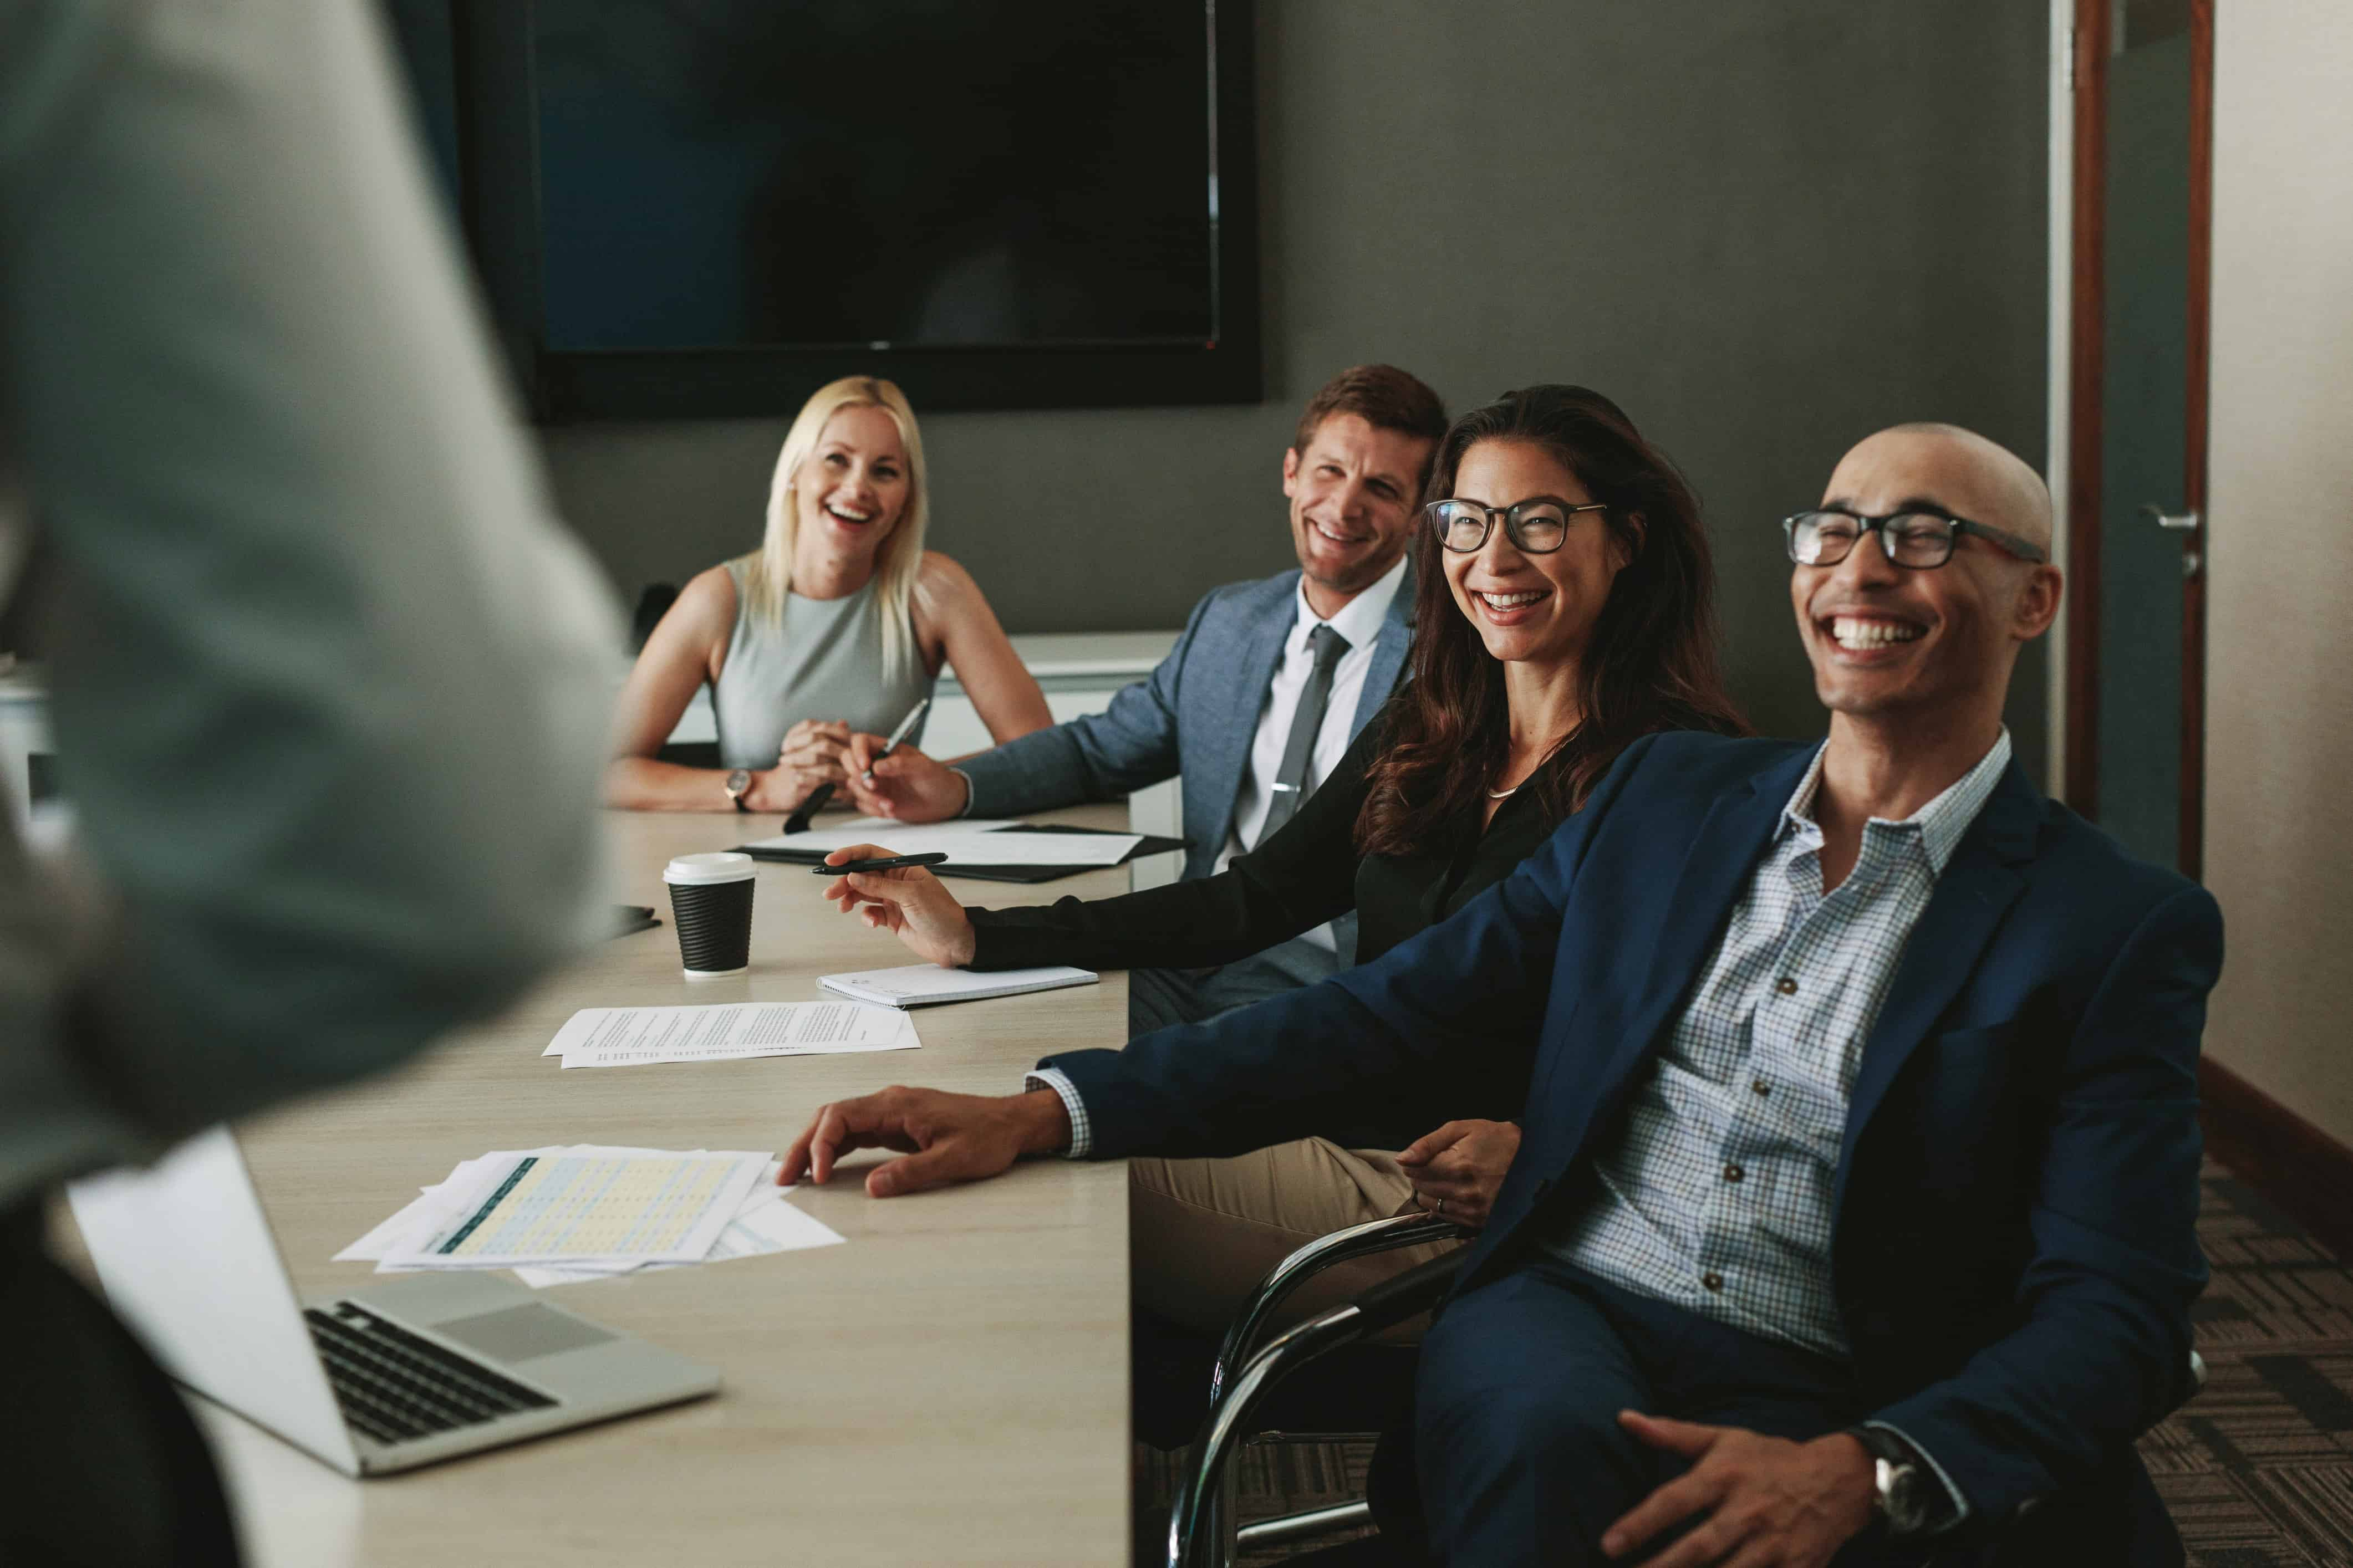 Employees want to up-skill and executives want ROI